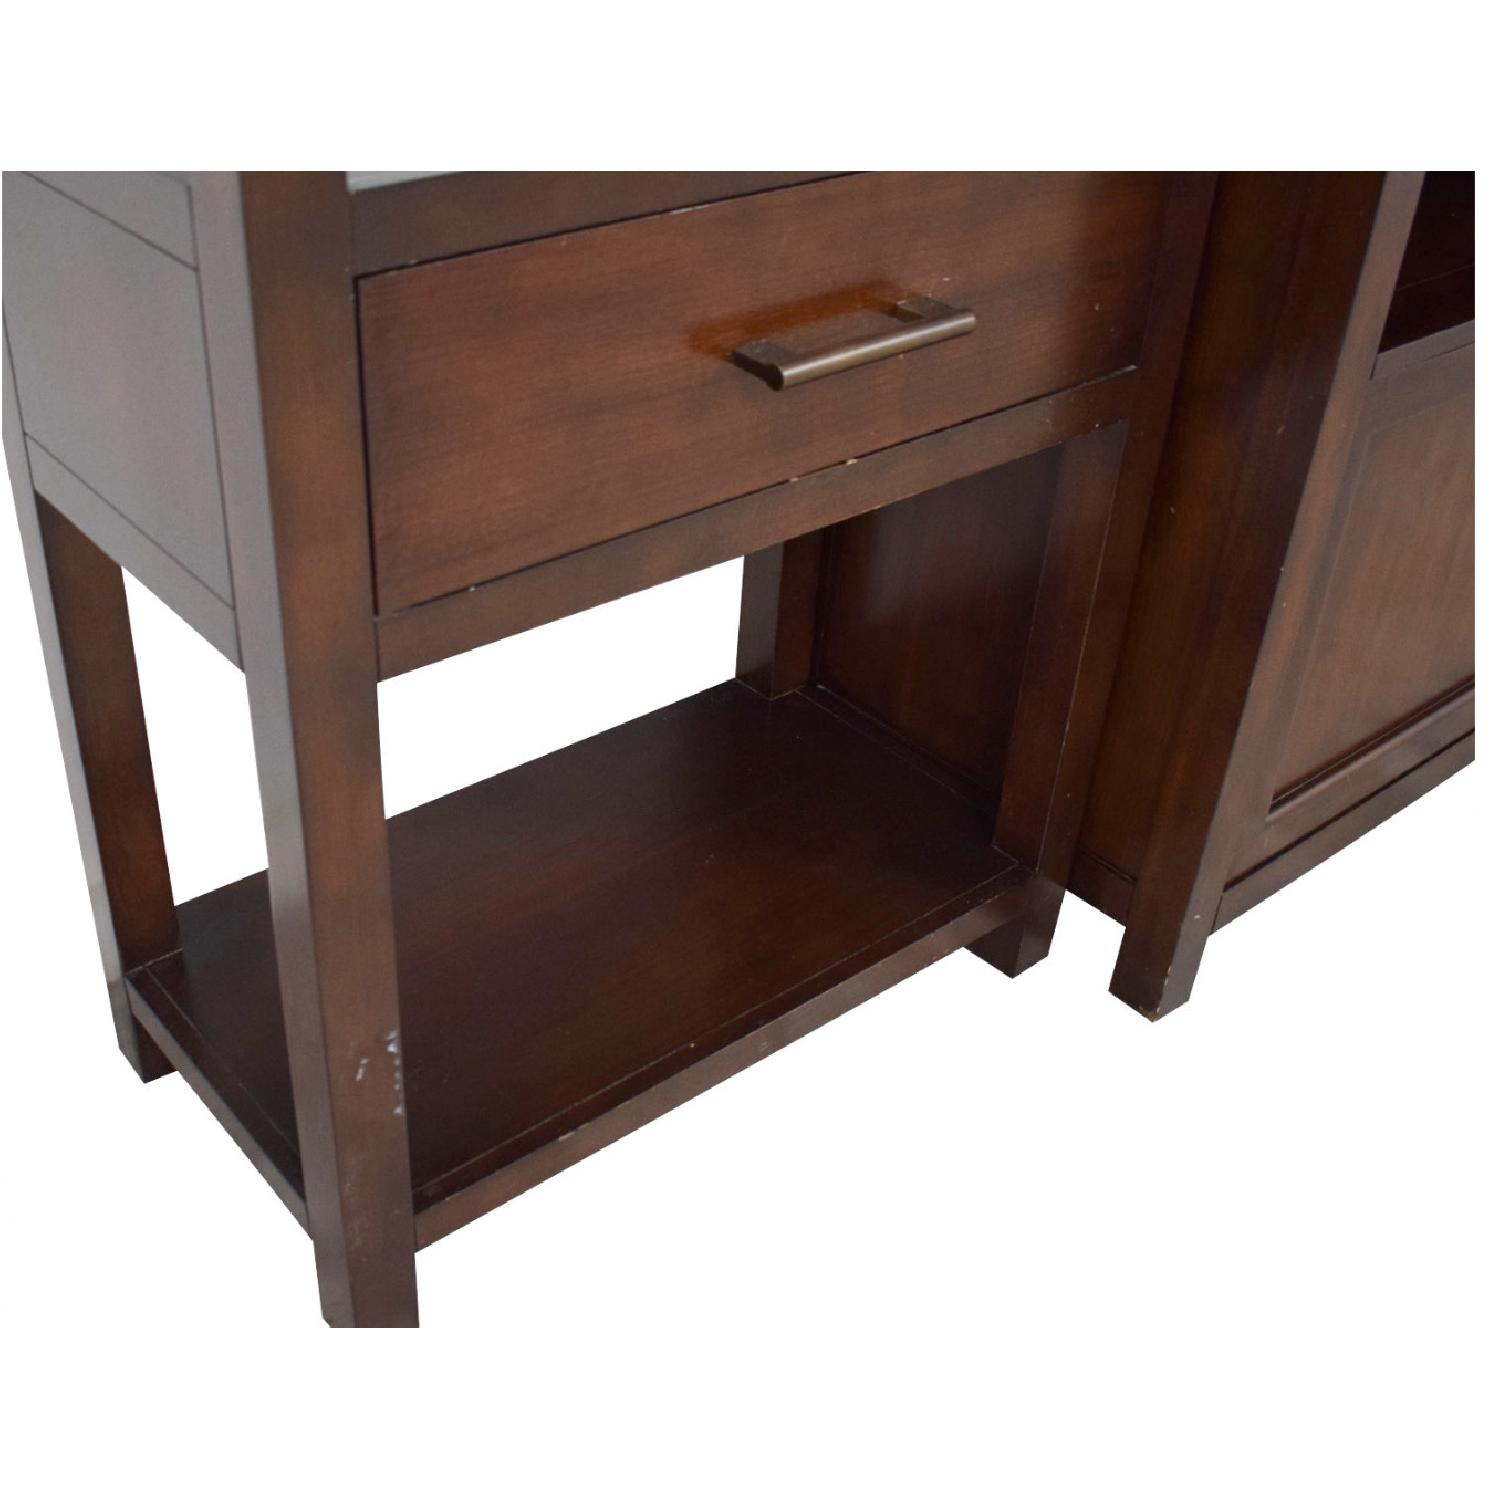 Crate & Barrel Media Console w/ 2 Media Towers - image-5